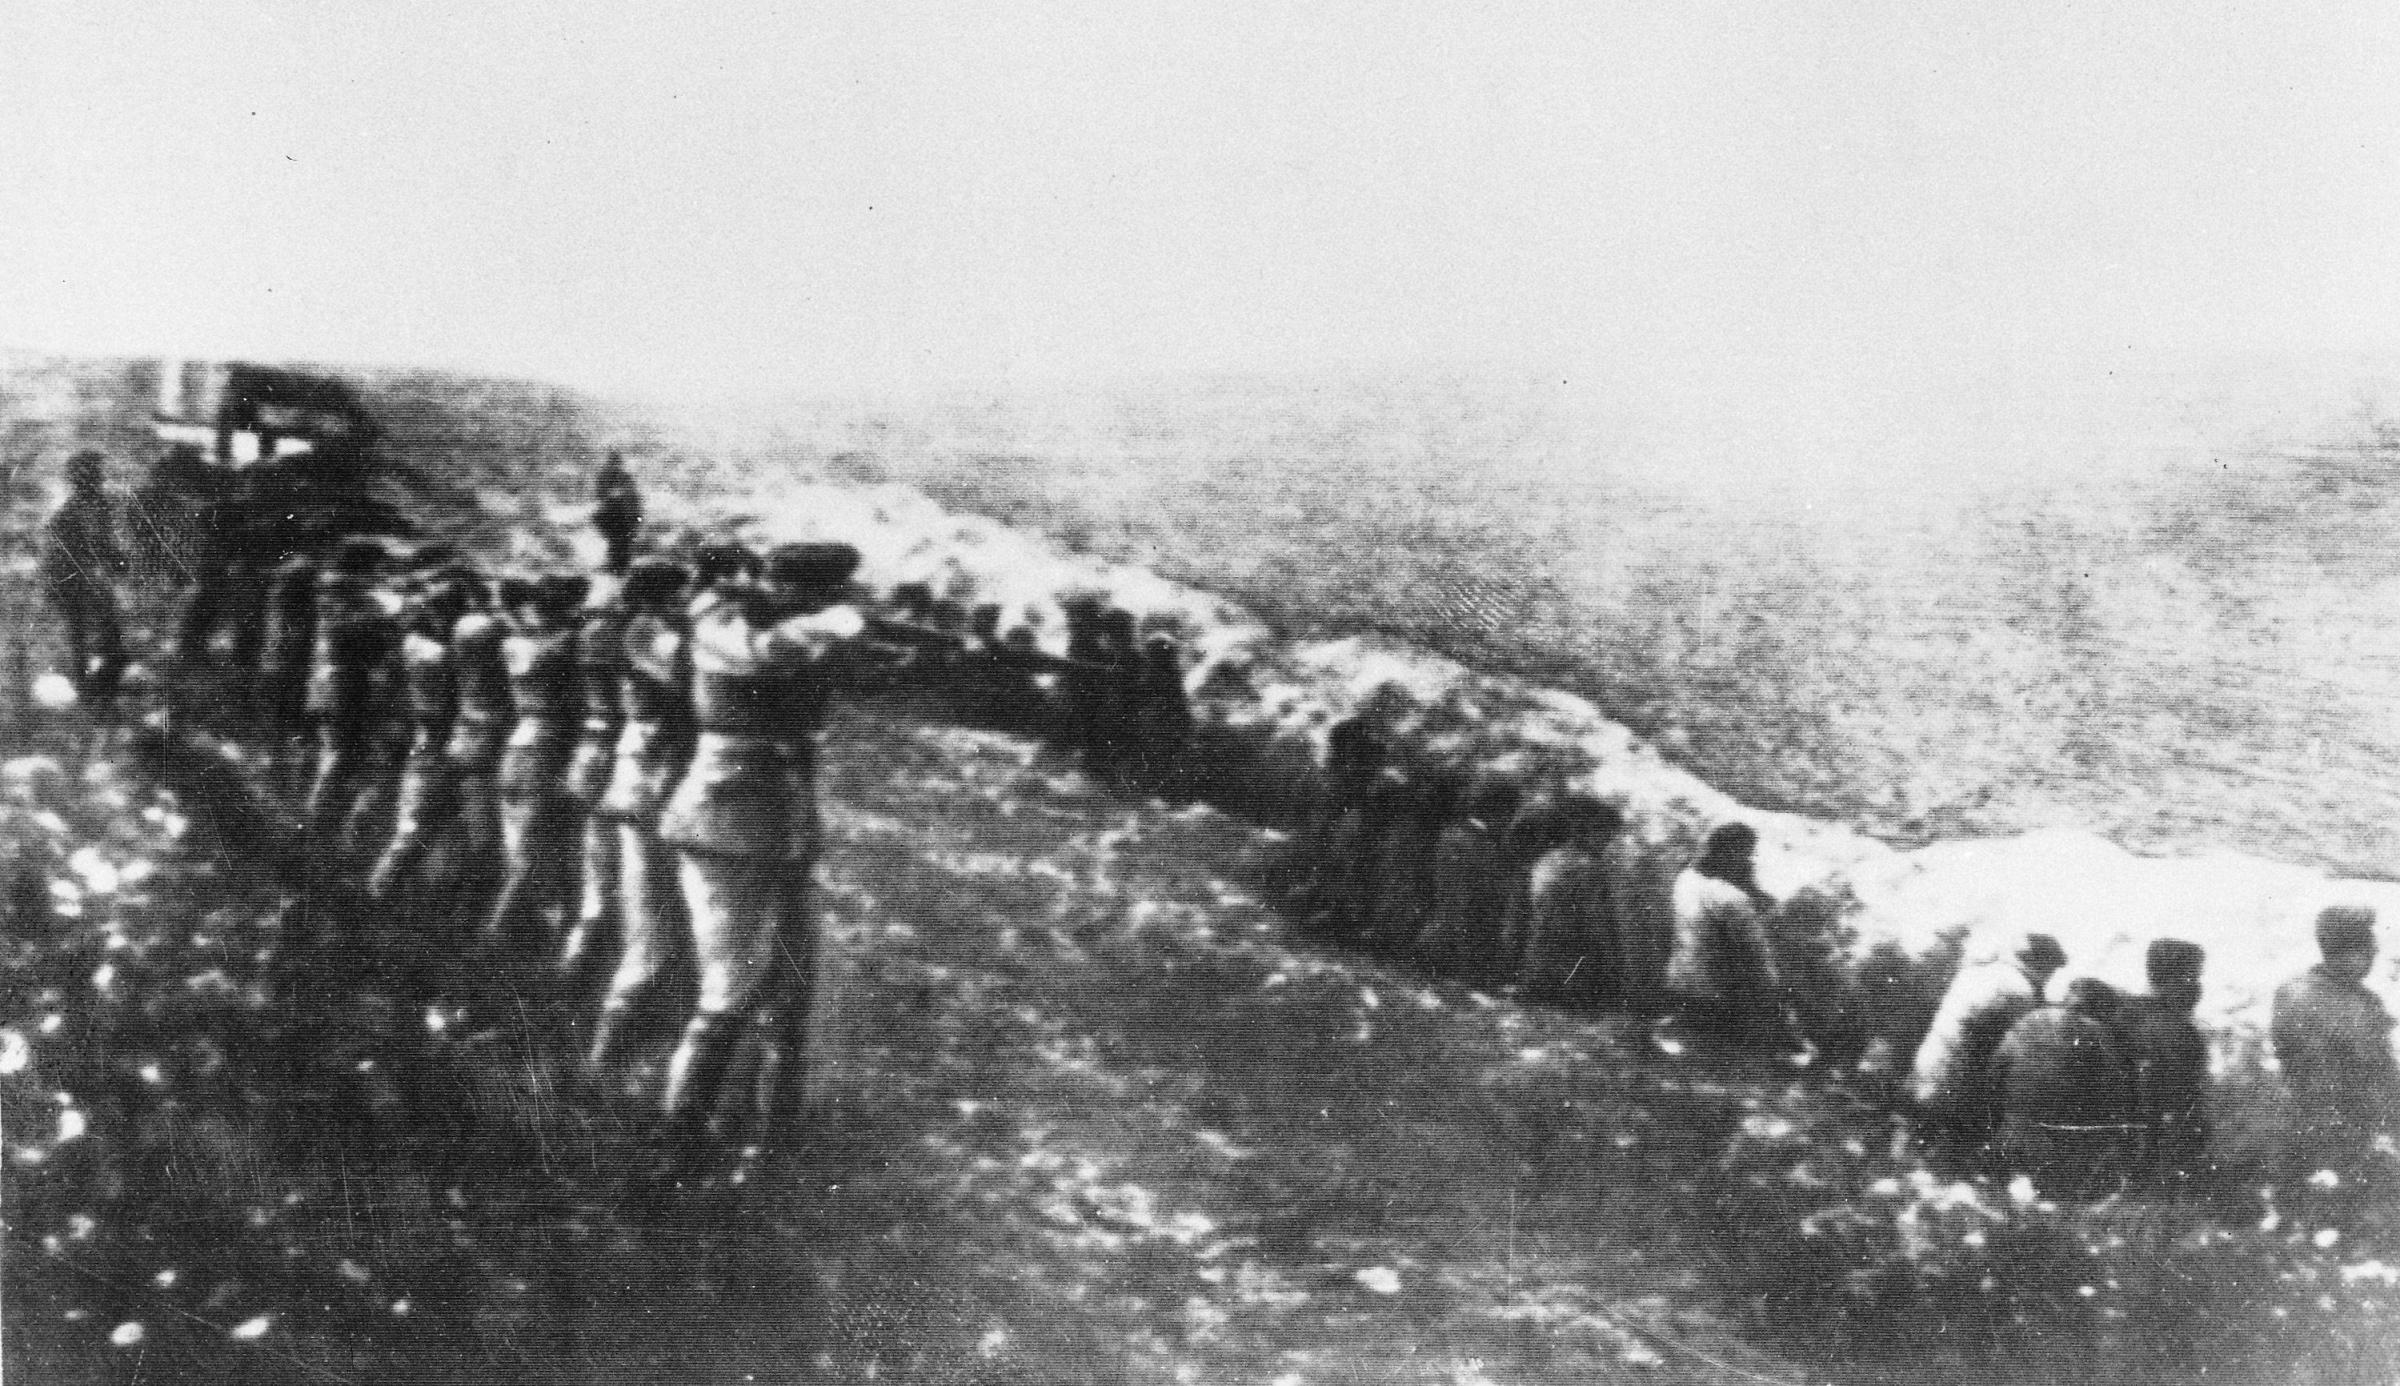 Wilhelm Karl Friedrich Hoffmeister was in Babi Yar, Kiev around the time 34,000 people were massacred there. Photograph: AP